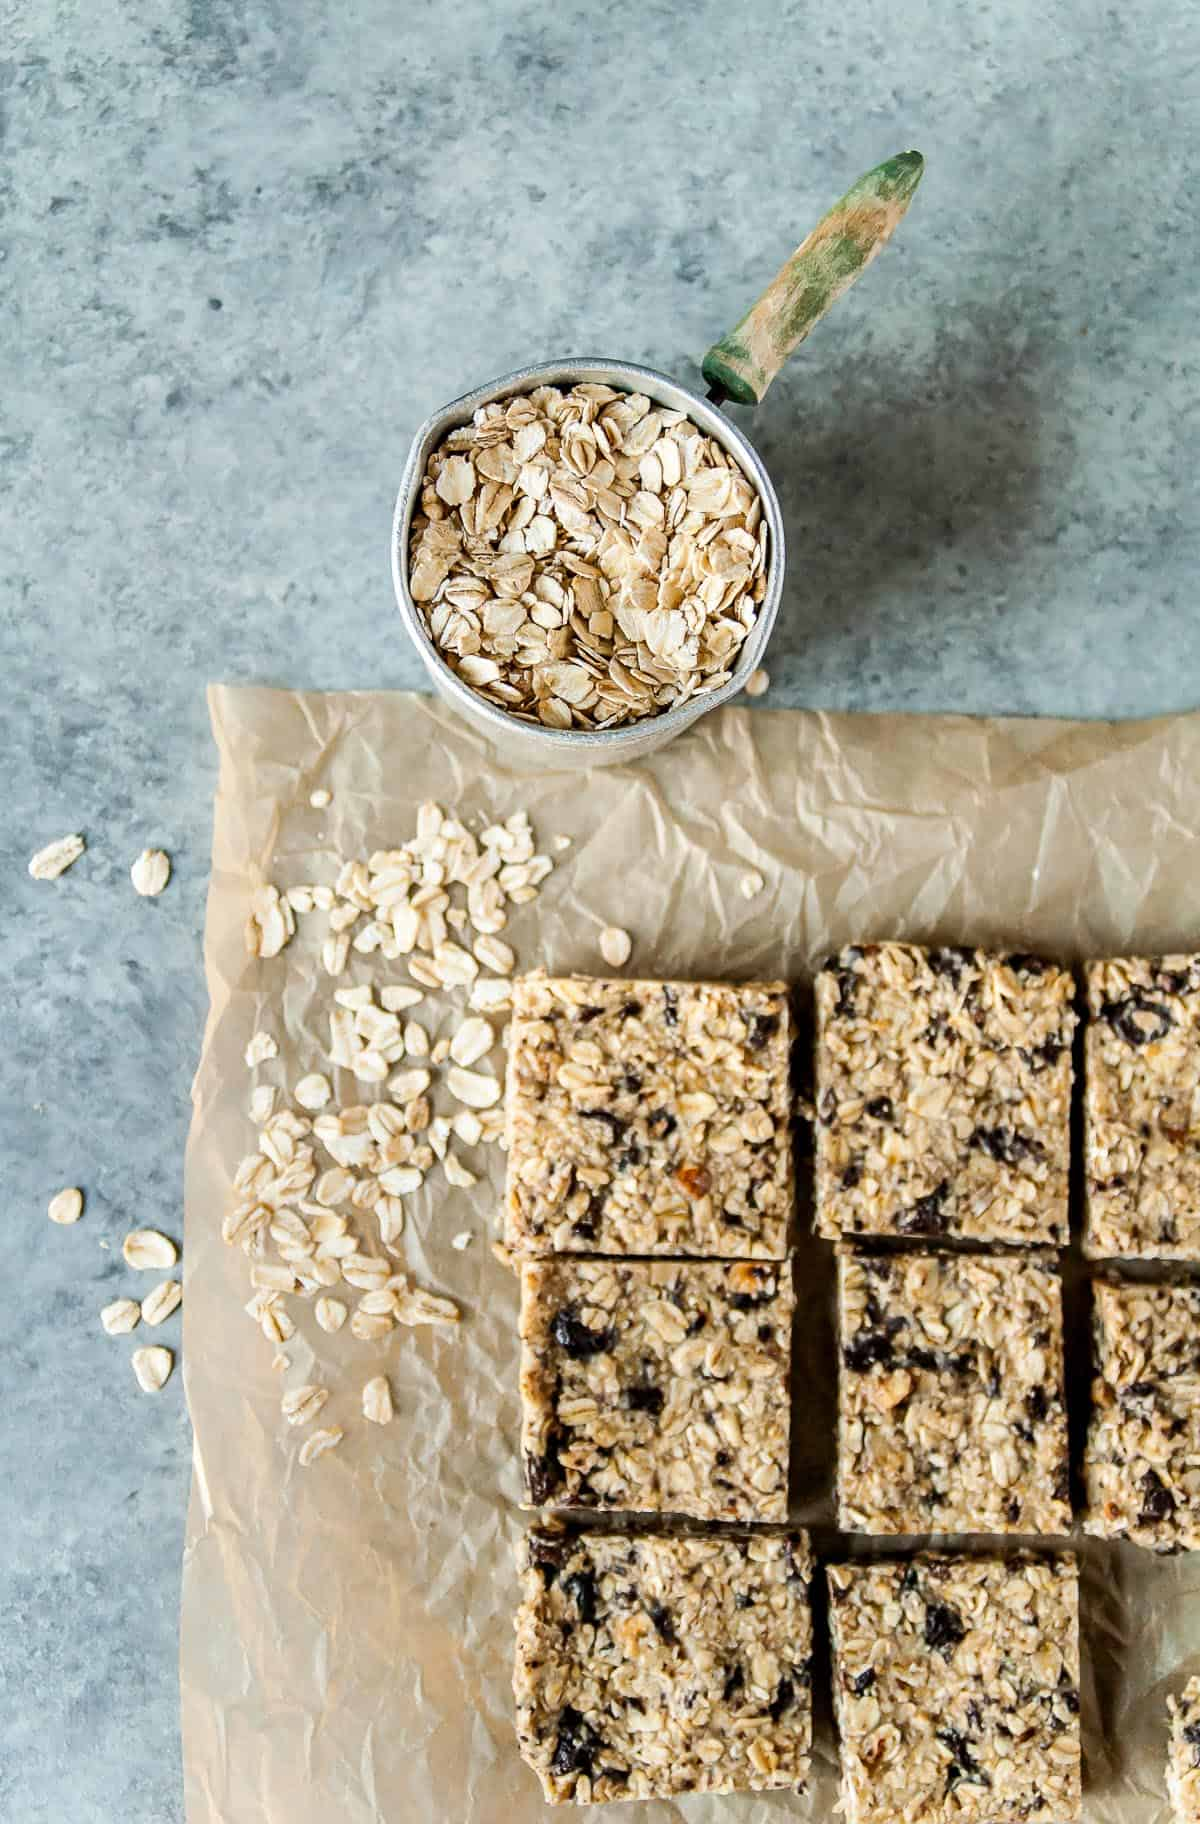 Chocolate almond vegan granola bars heart of a baker vegan quick and easy chocolate almond vegan granola bars perfect for snacking or dessert vegan ccuart Image collections